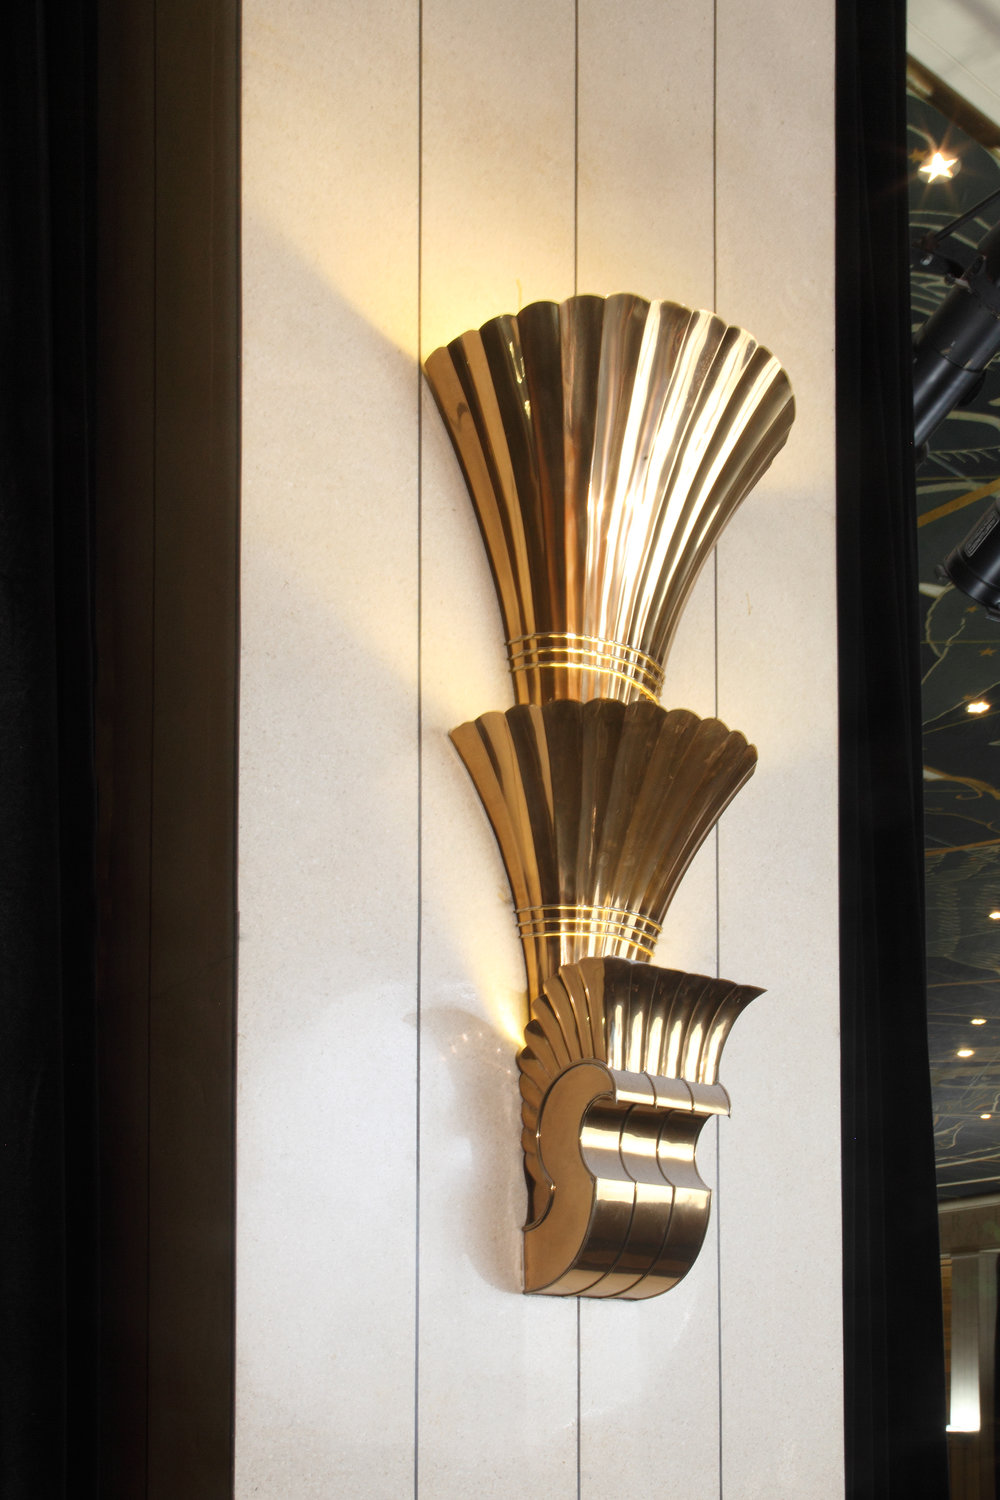 13 Wall Sconce at Upper Promenade.jpg